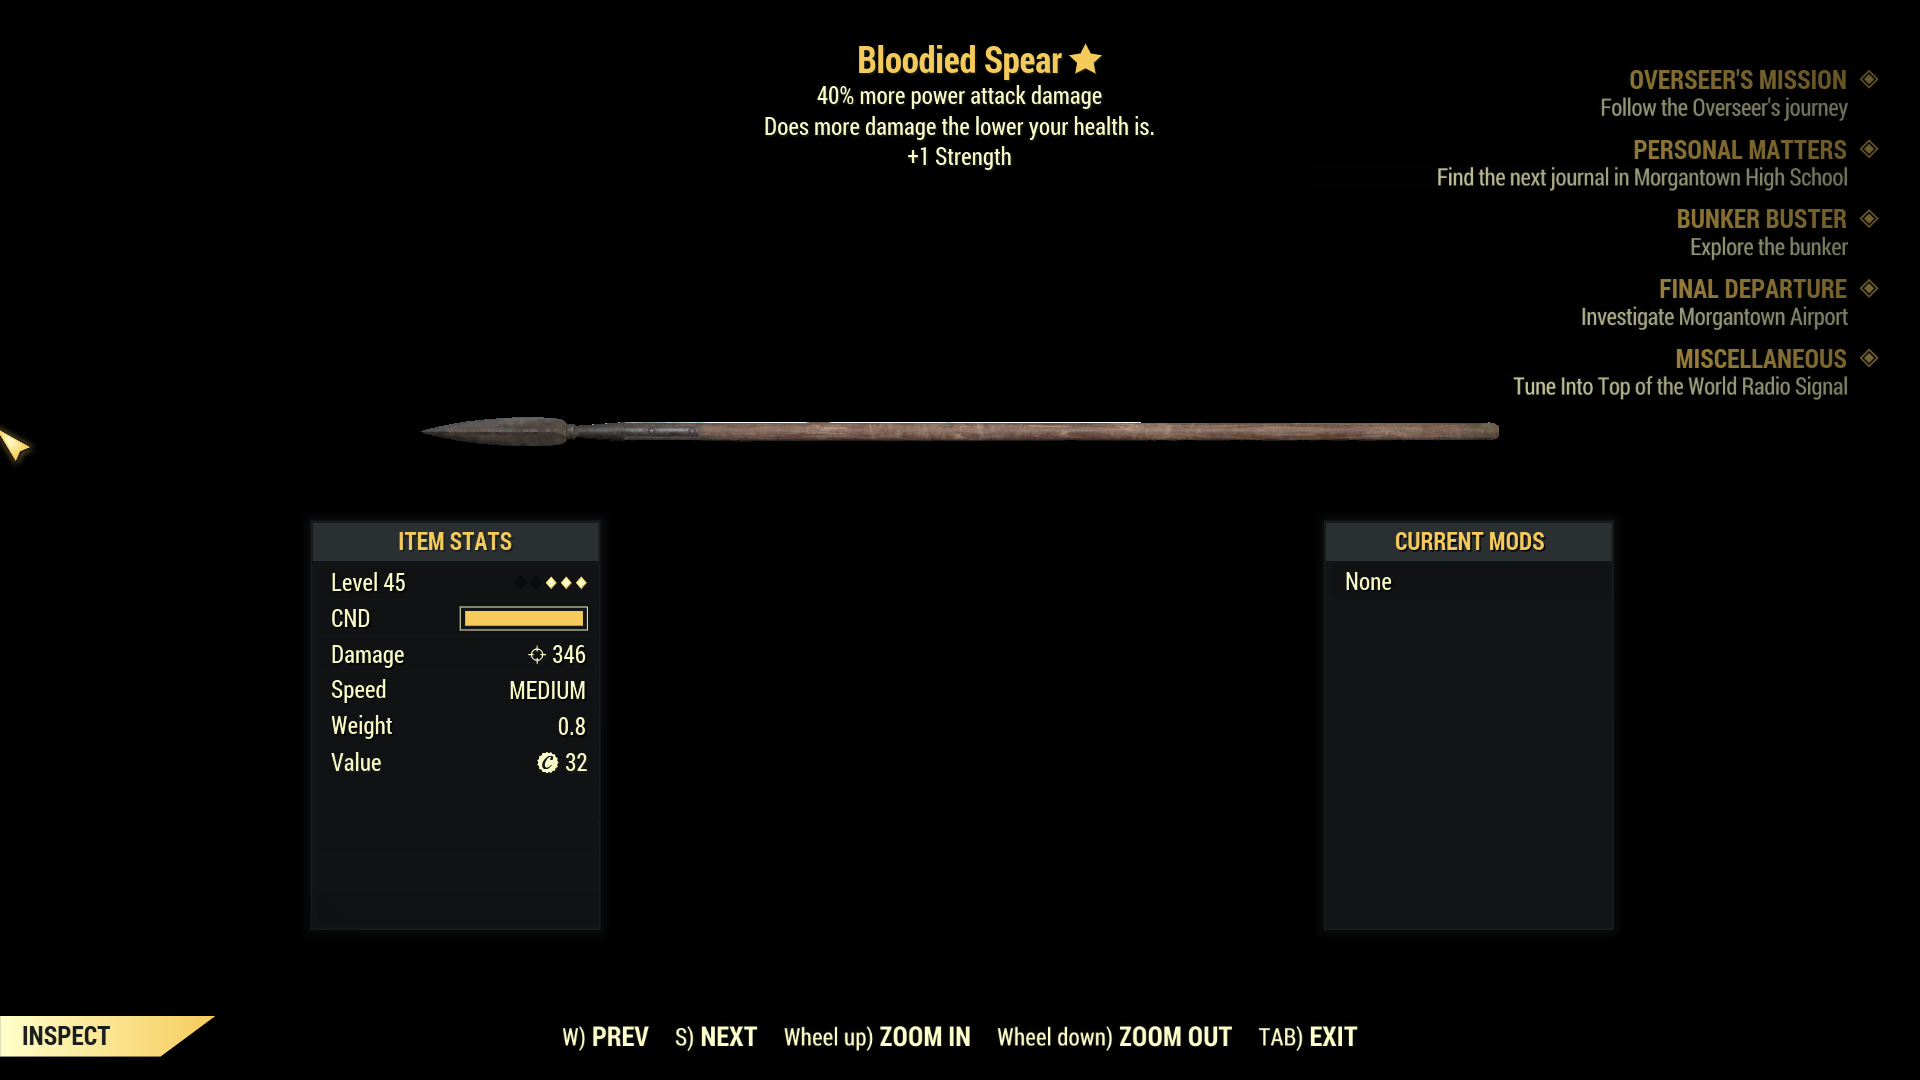 ★★★ Bloodied Spear[40% More Power Attack Damage][+1 STR] | FAST DELIVERY |